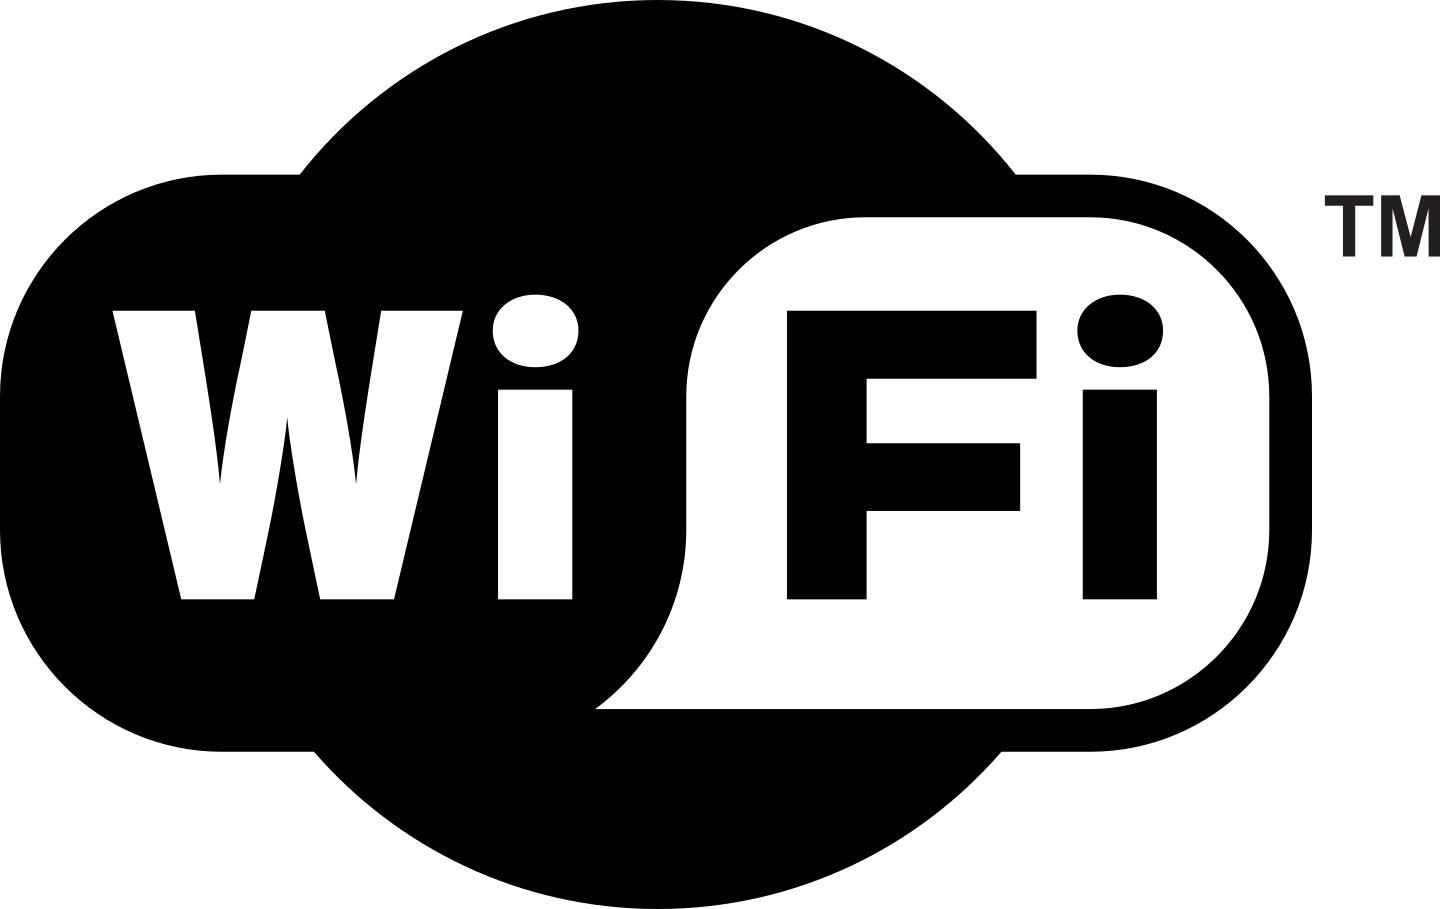 wi fi wireless logo 2 - Wi-fi Logo - Wireless Logo